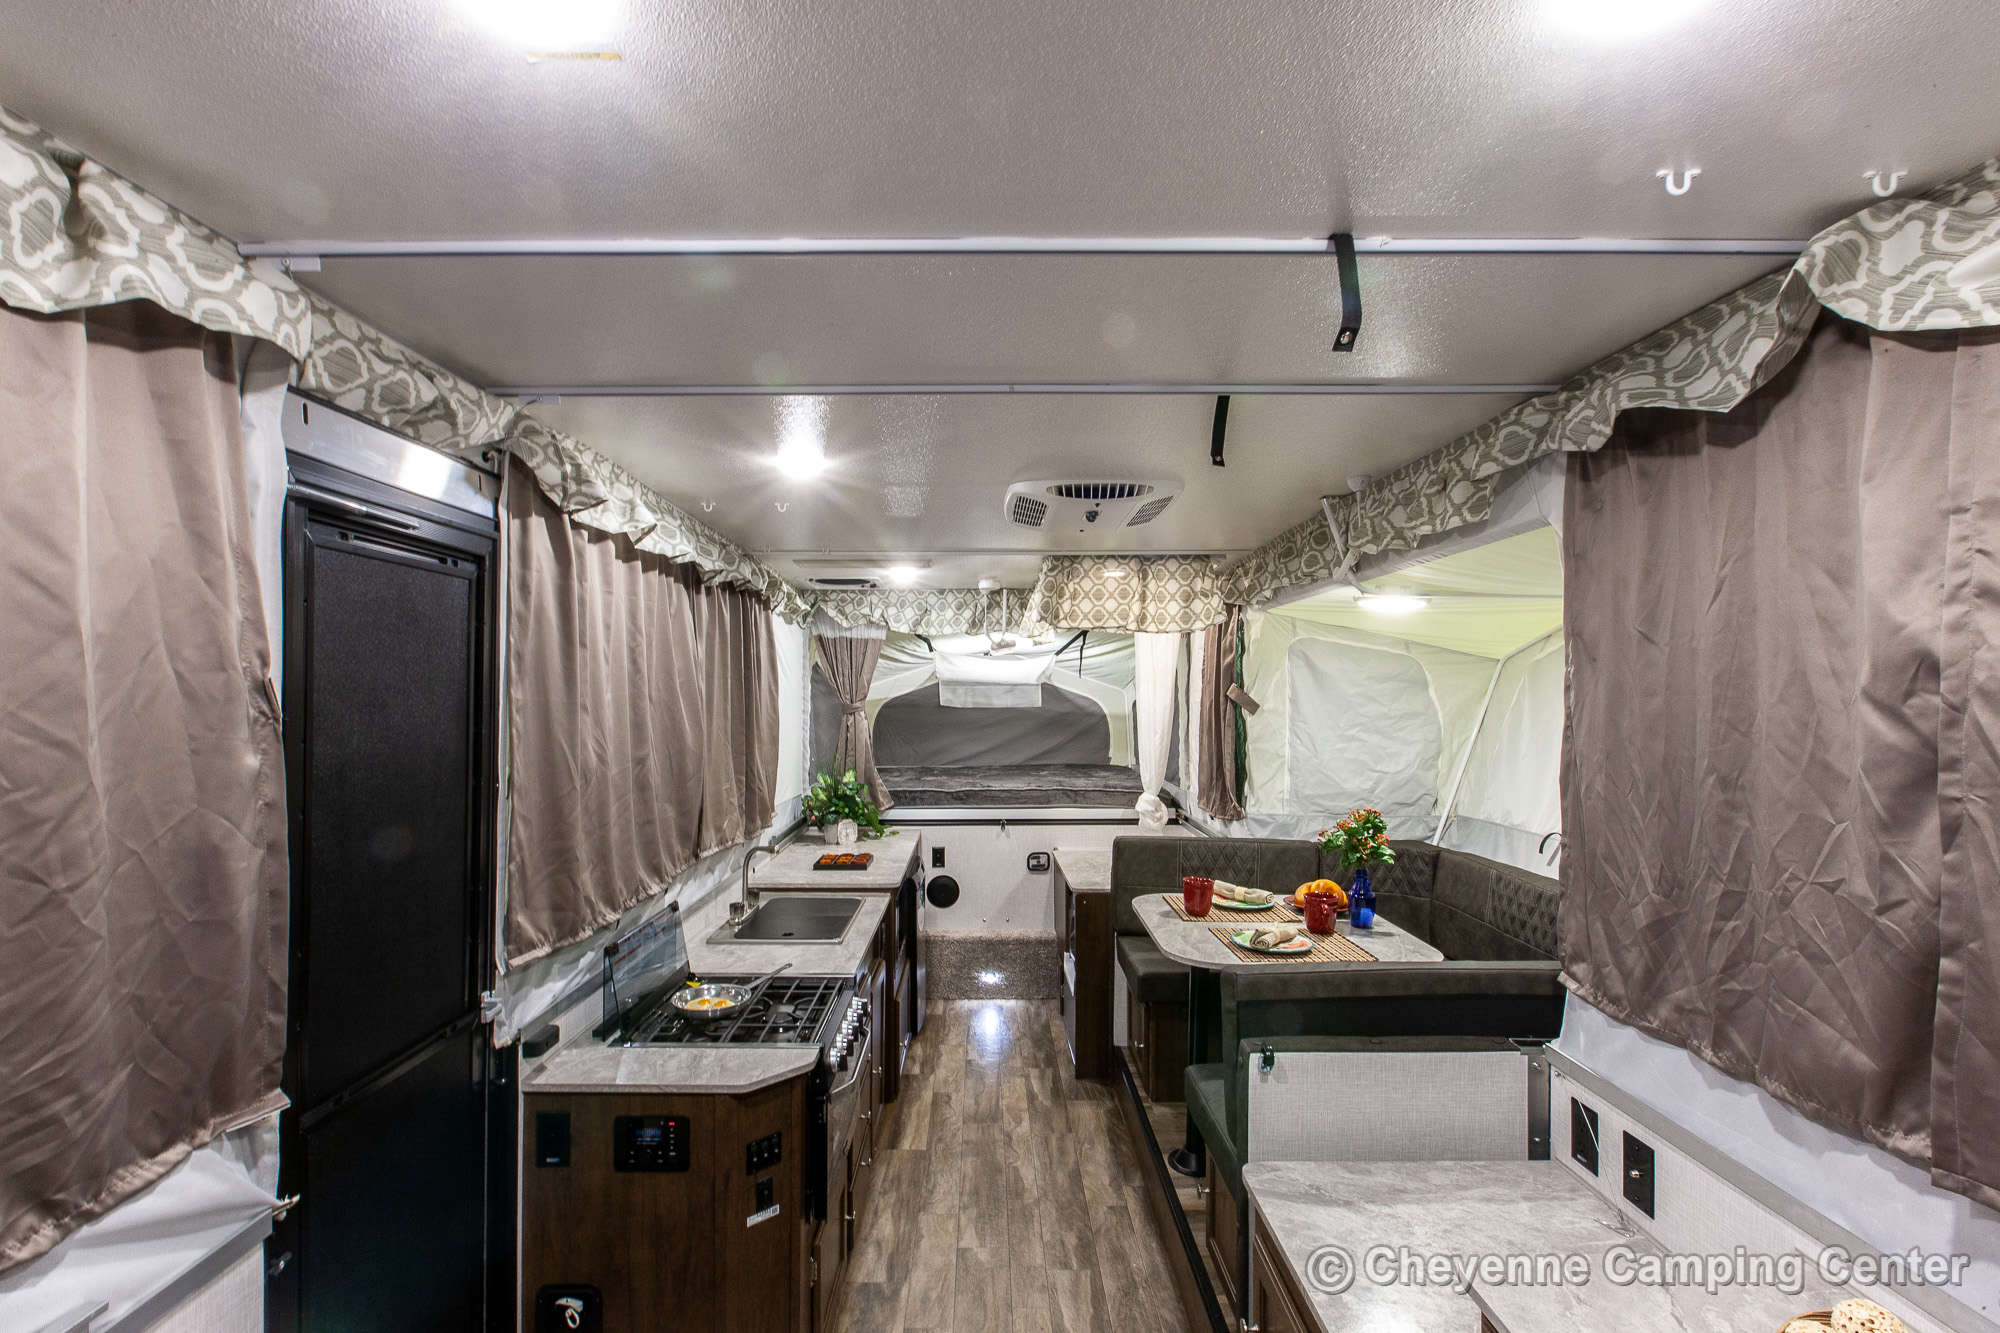 2021 Forest River Flagstaff High Wall HW29SC Folding Camper Interior Image